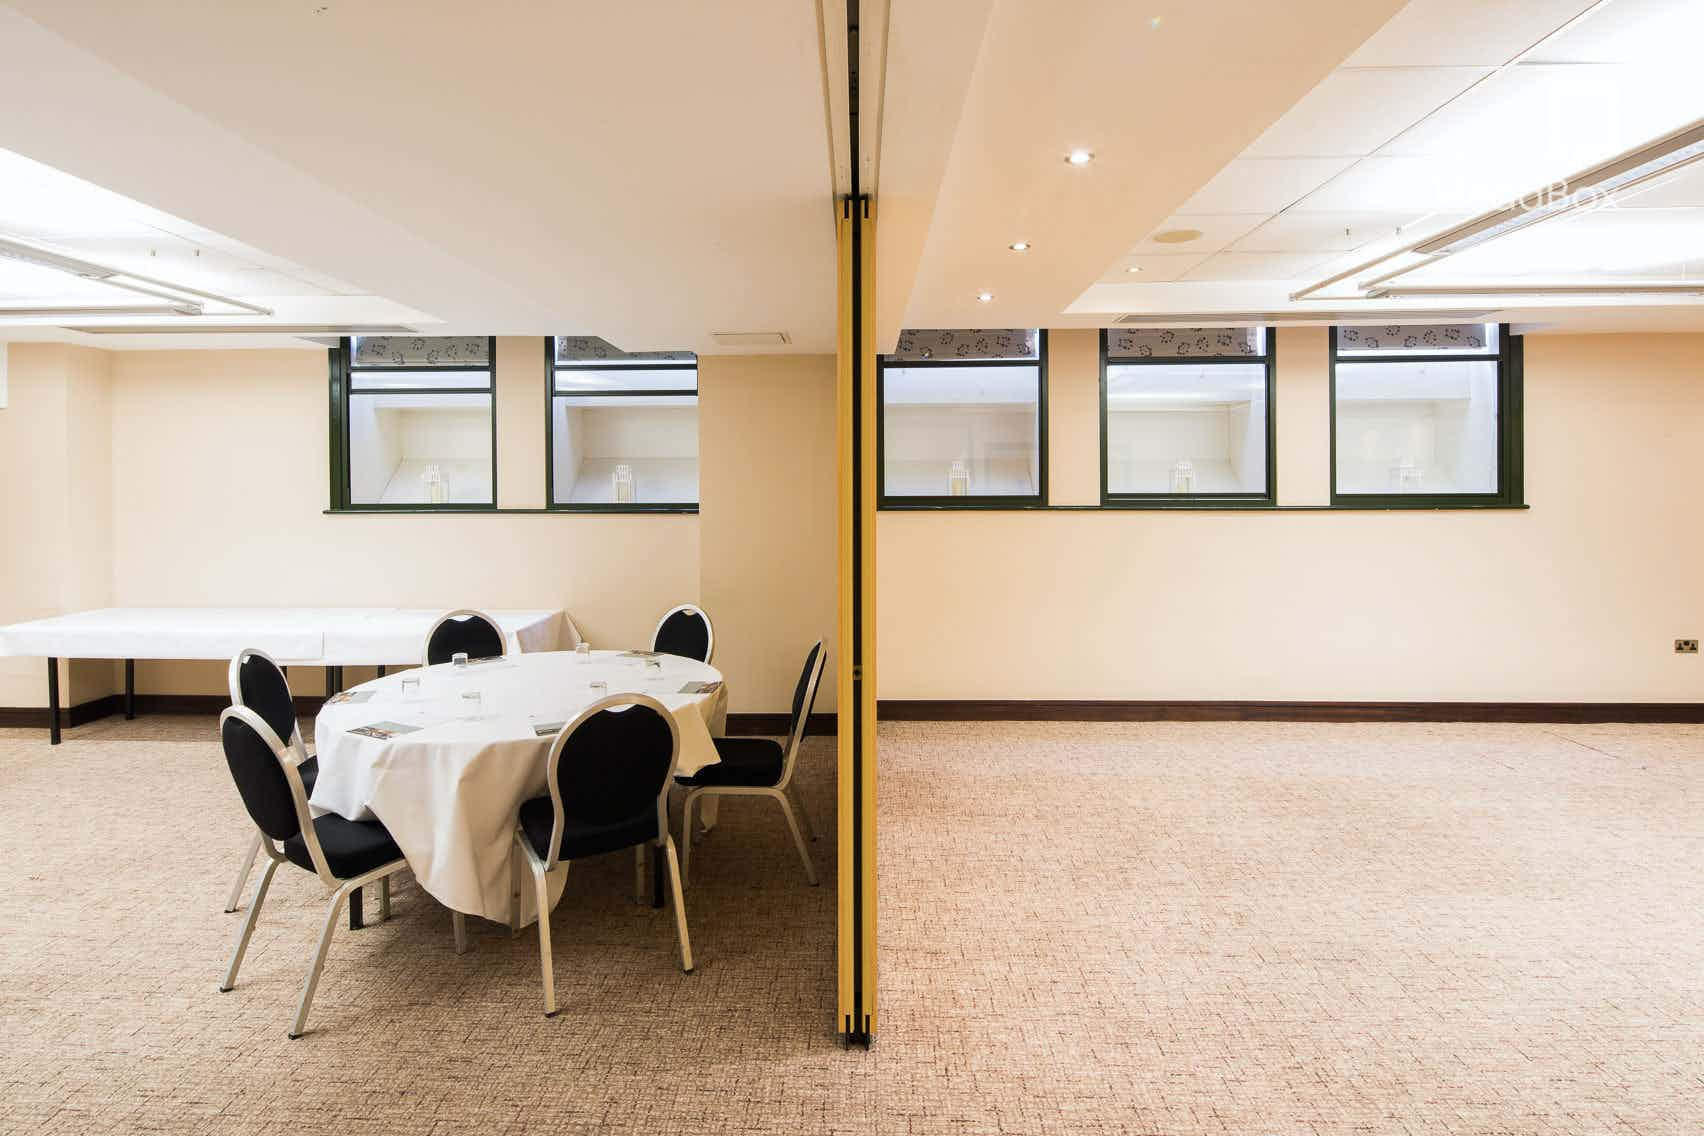 Charters Suite 1 or 2, Arora Hotel Manchester